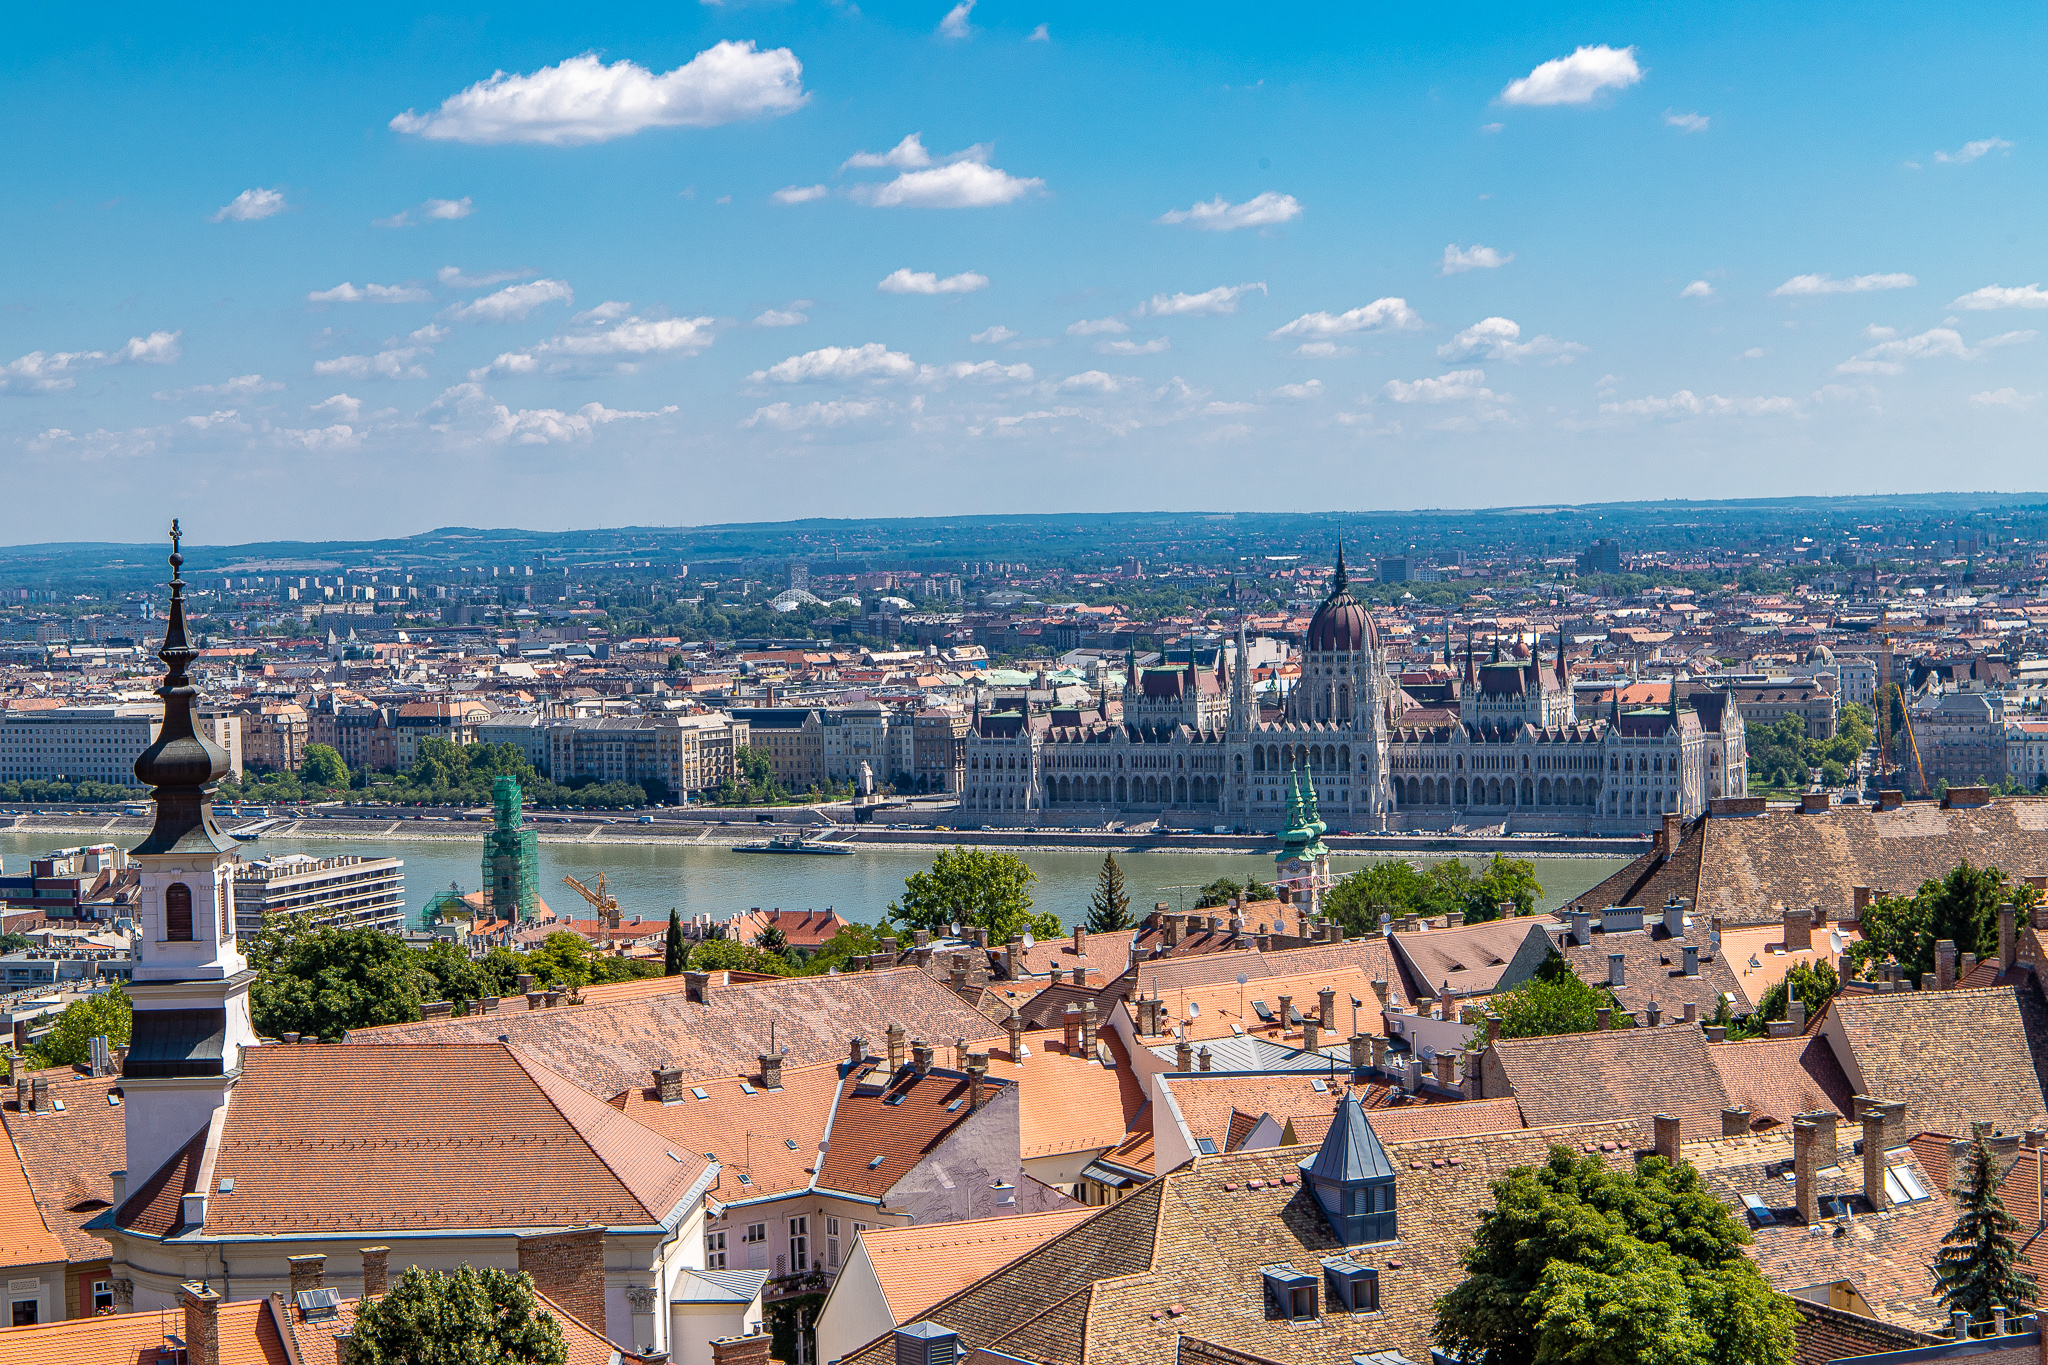 Views across Castle District rooftops to the Danube River and Hungarian Parliament Buildings